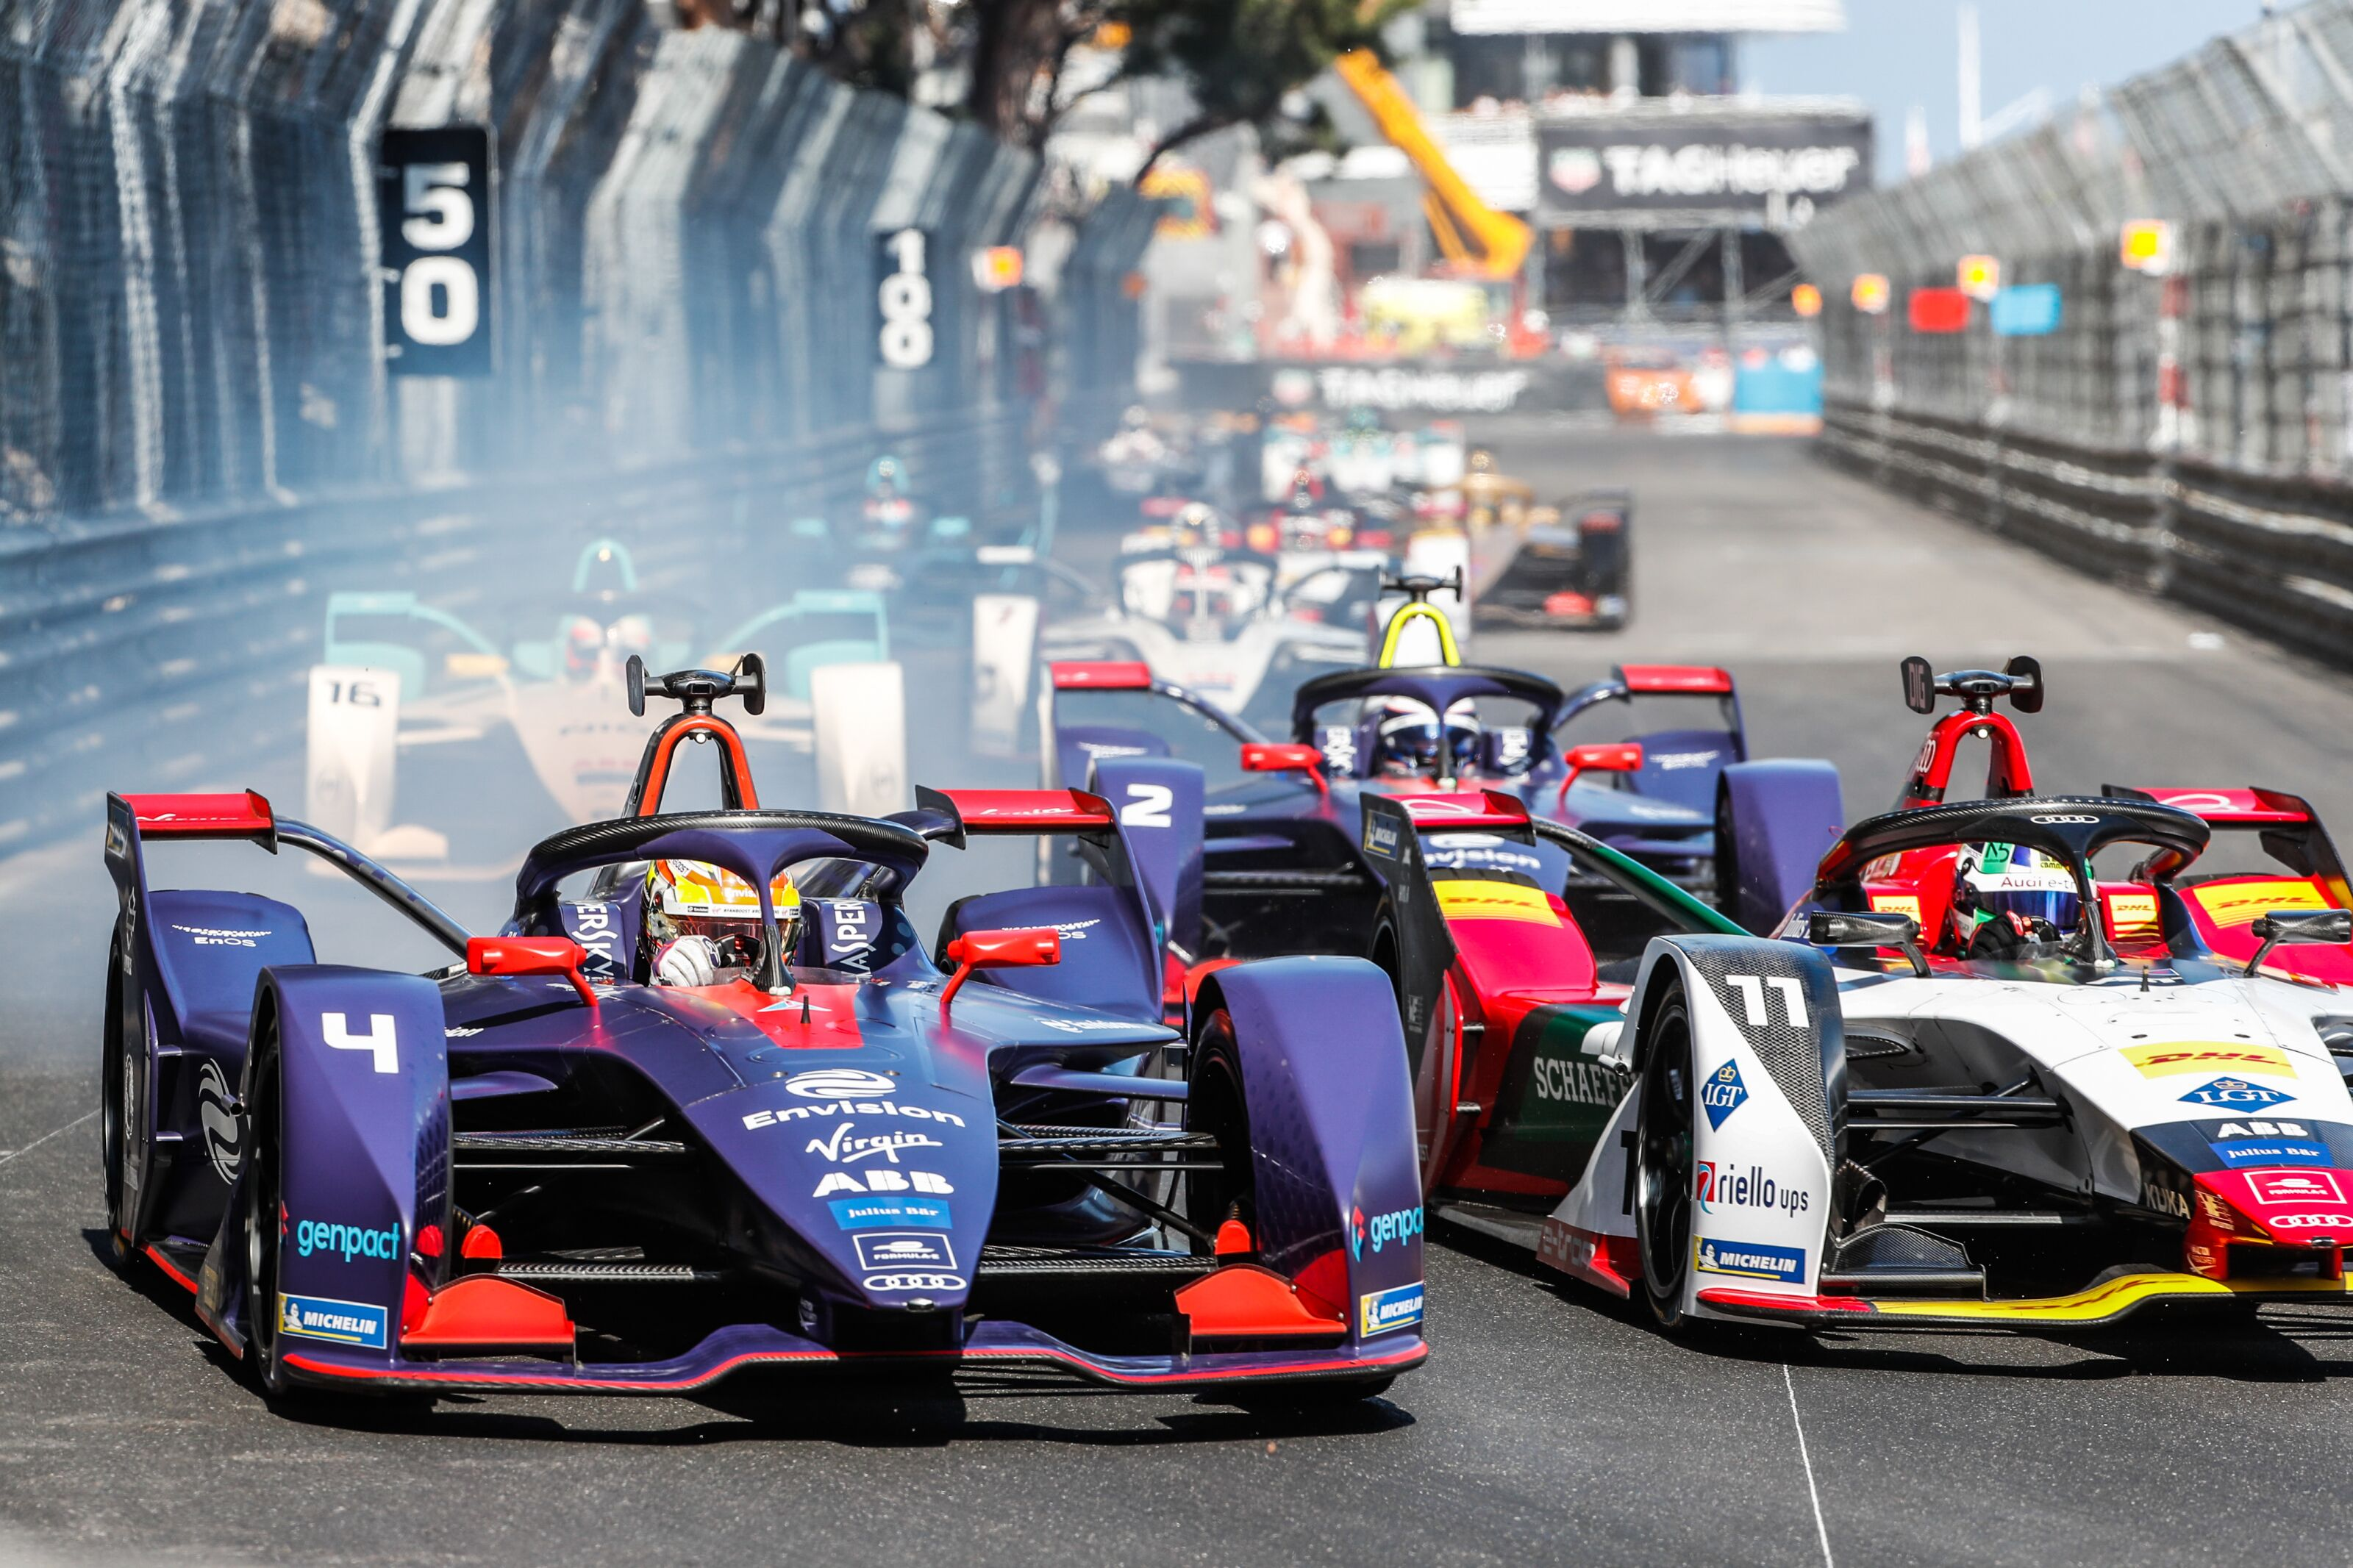 Formula E: Top 9 drivers still separated by only a handful of points